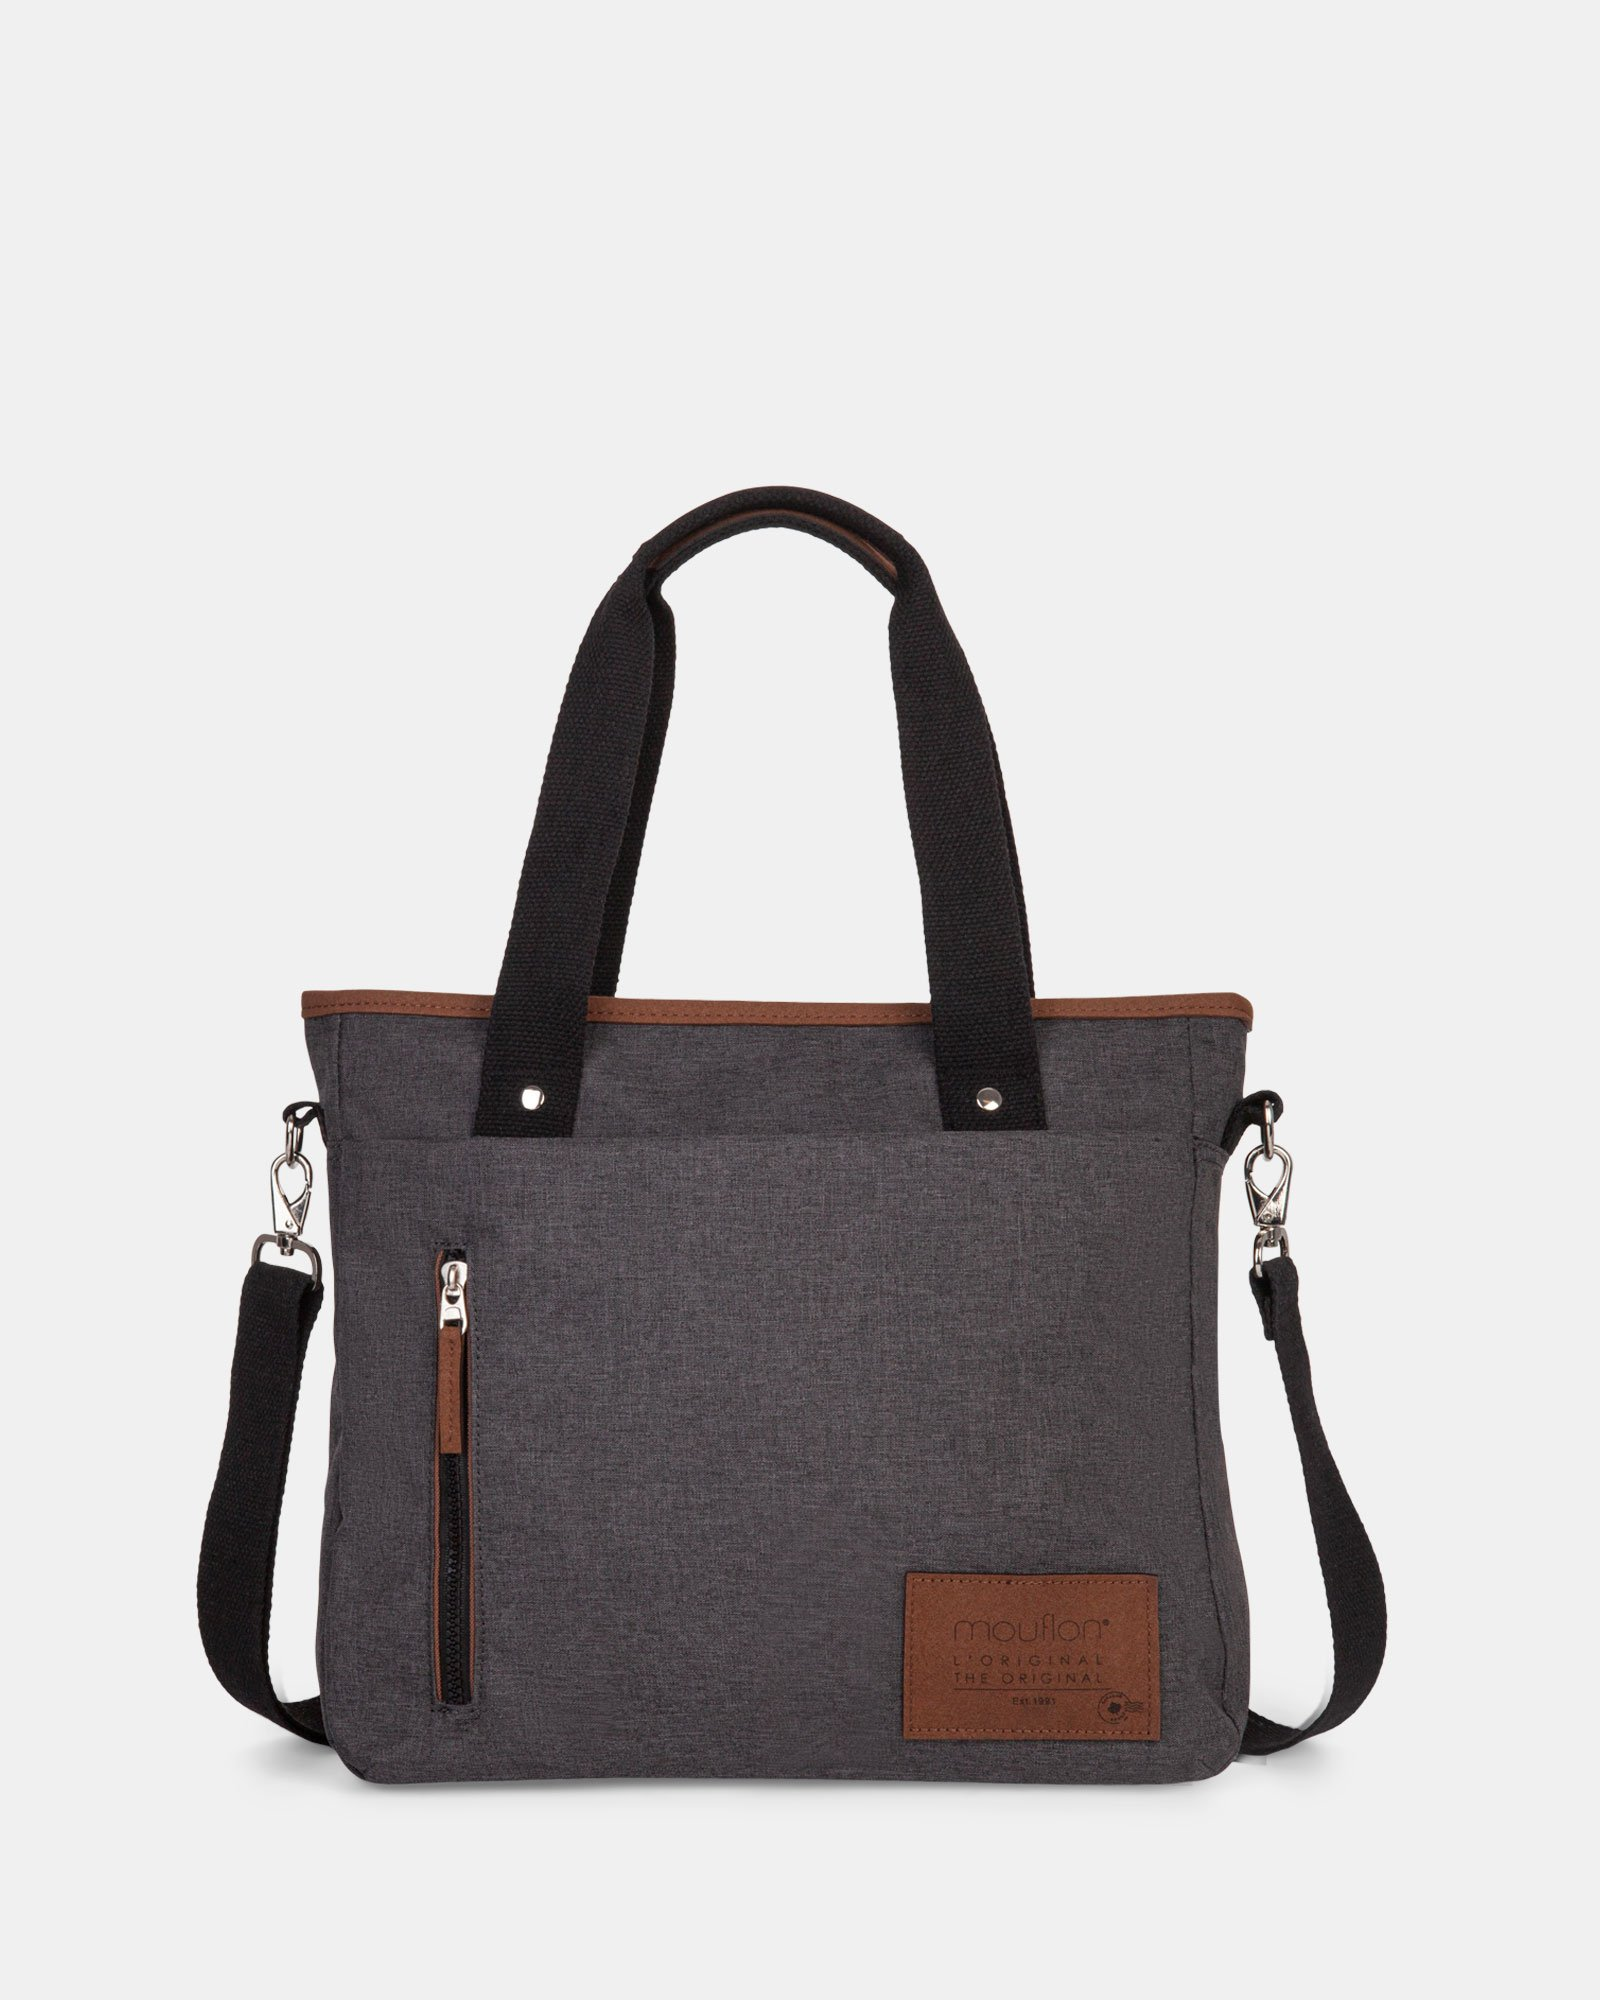 WANDER - Tote Bag with top zipper closure - Charcoal - Mouflon - Zoom